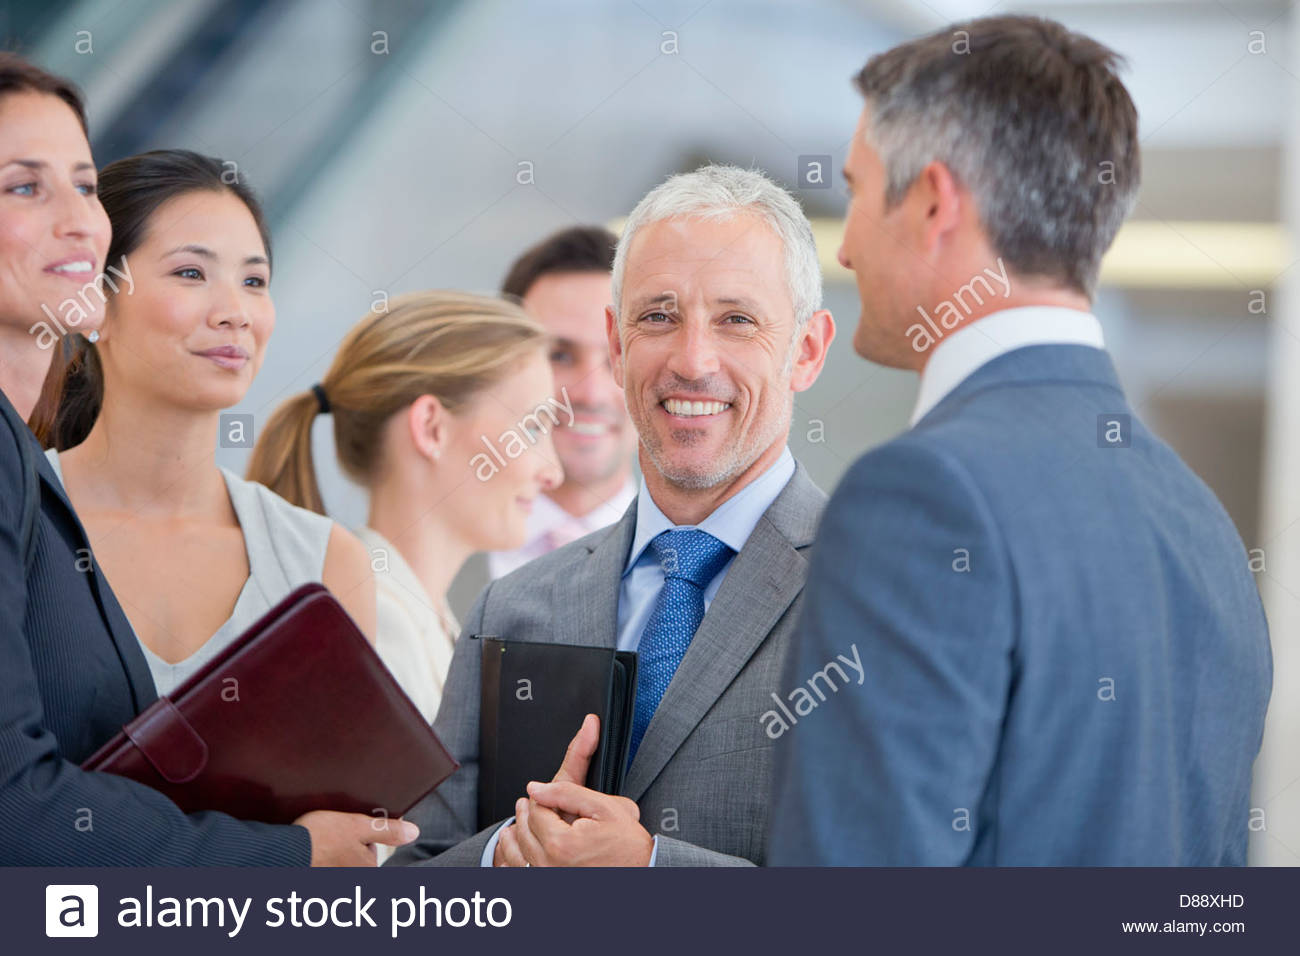 Portrait of smiling businessman among co-workers - Stock Image